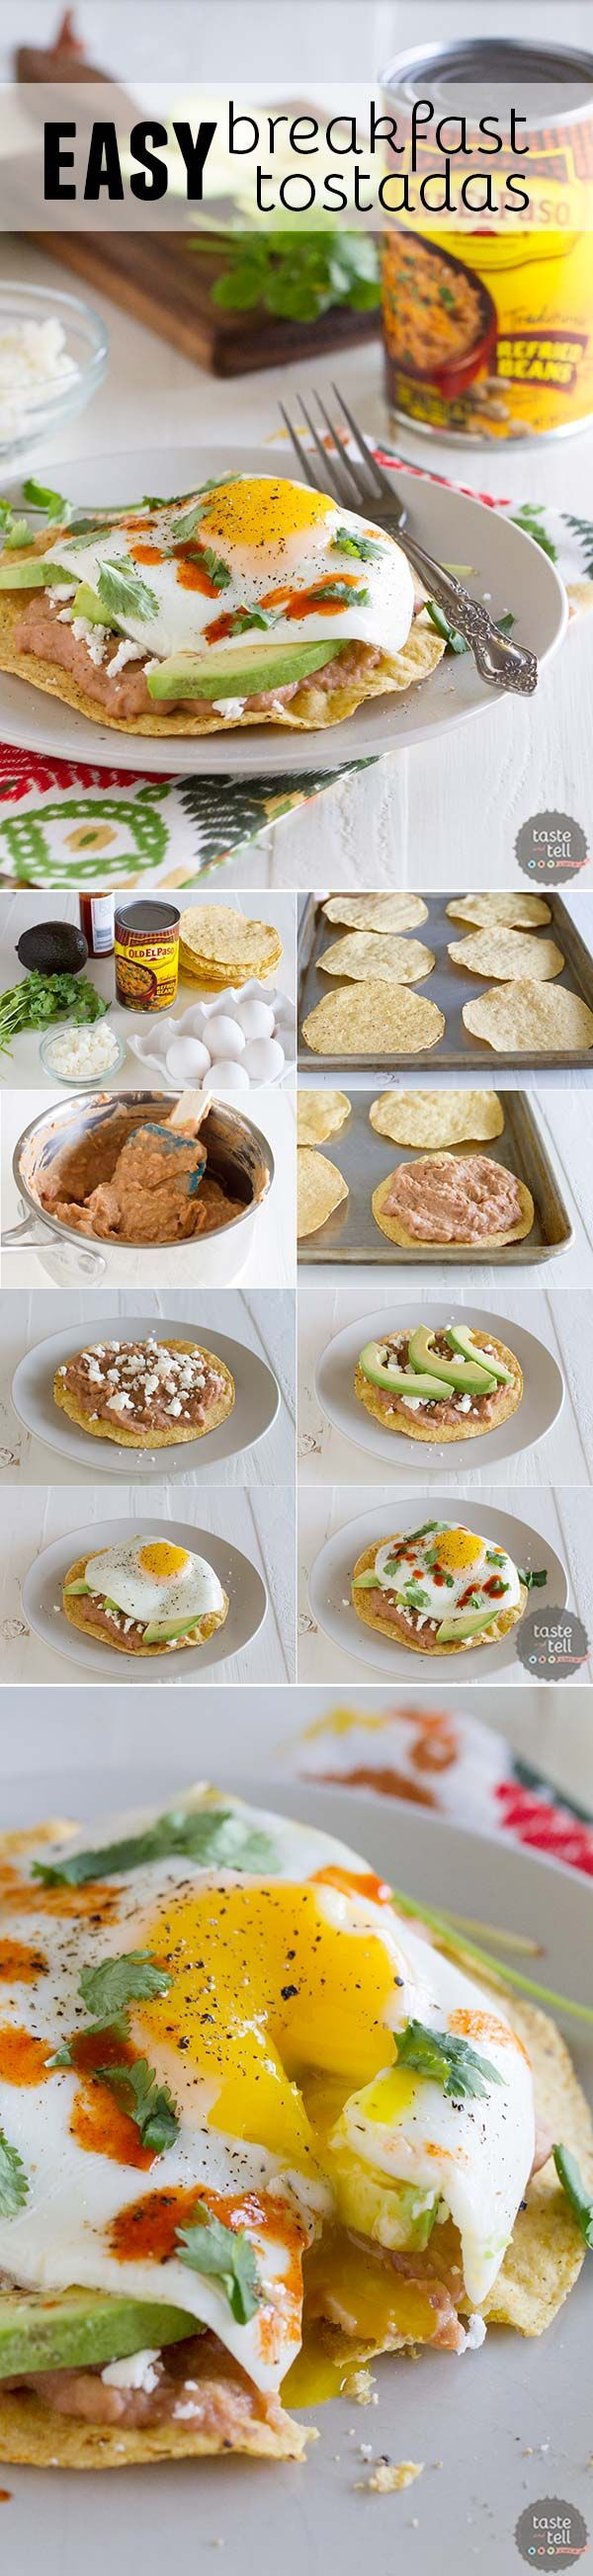 You will not want to save these Easy Breakfast Tostadas just for breakfast! This flavor-packed recipe is great for breakfast, lunch or dinner.